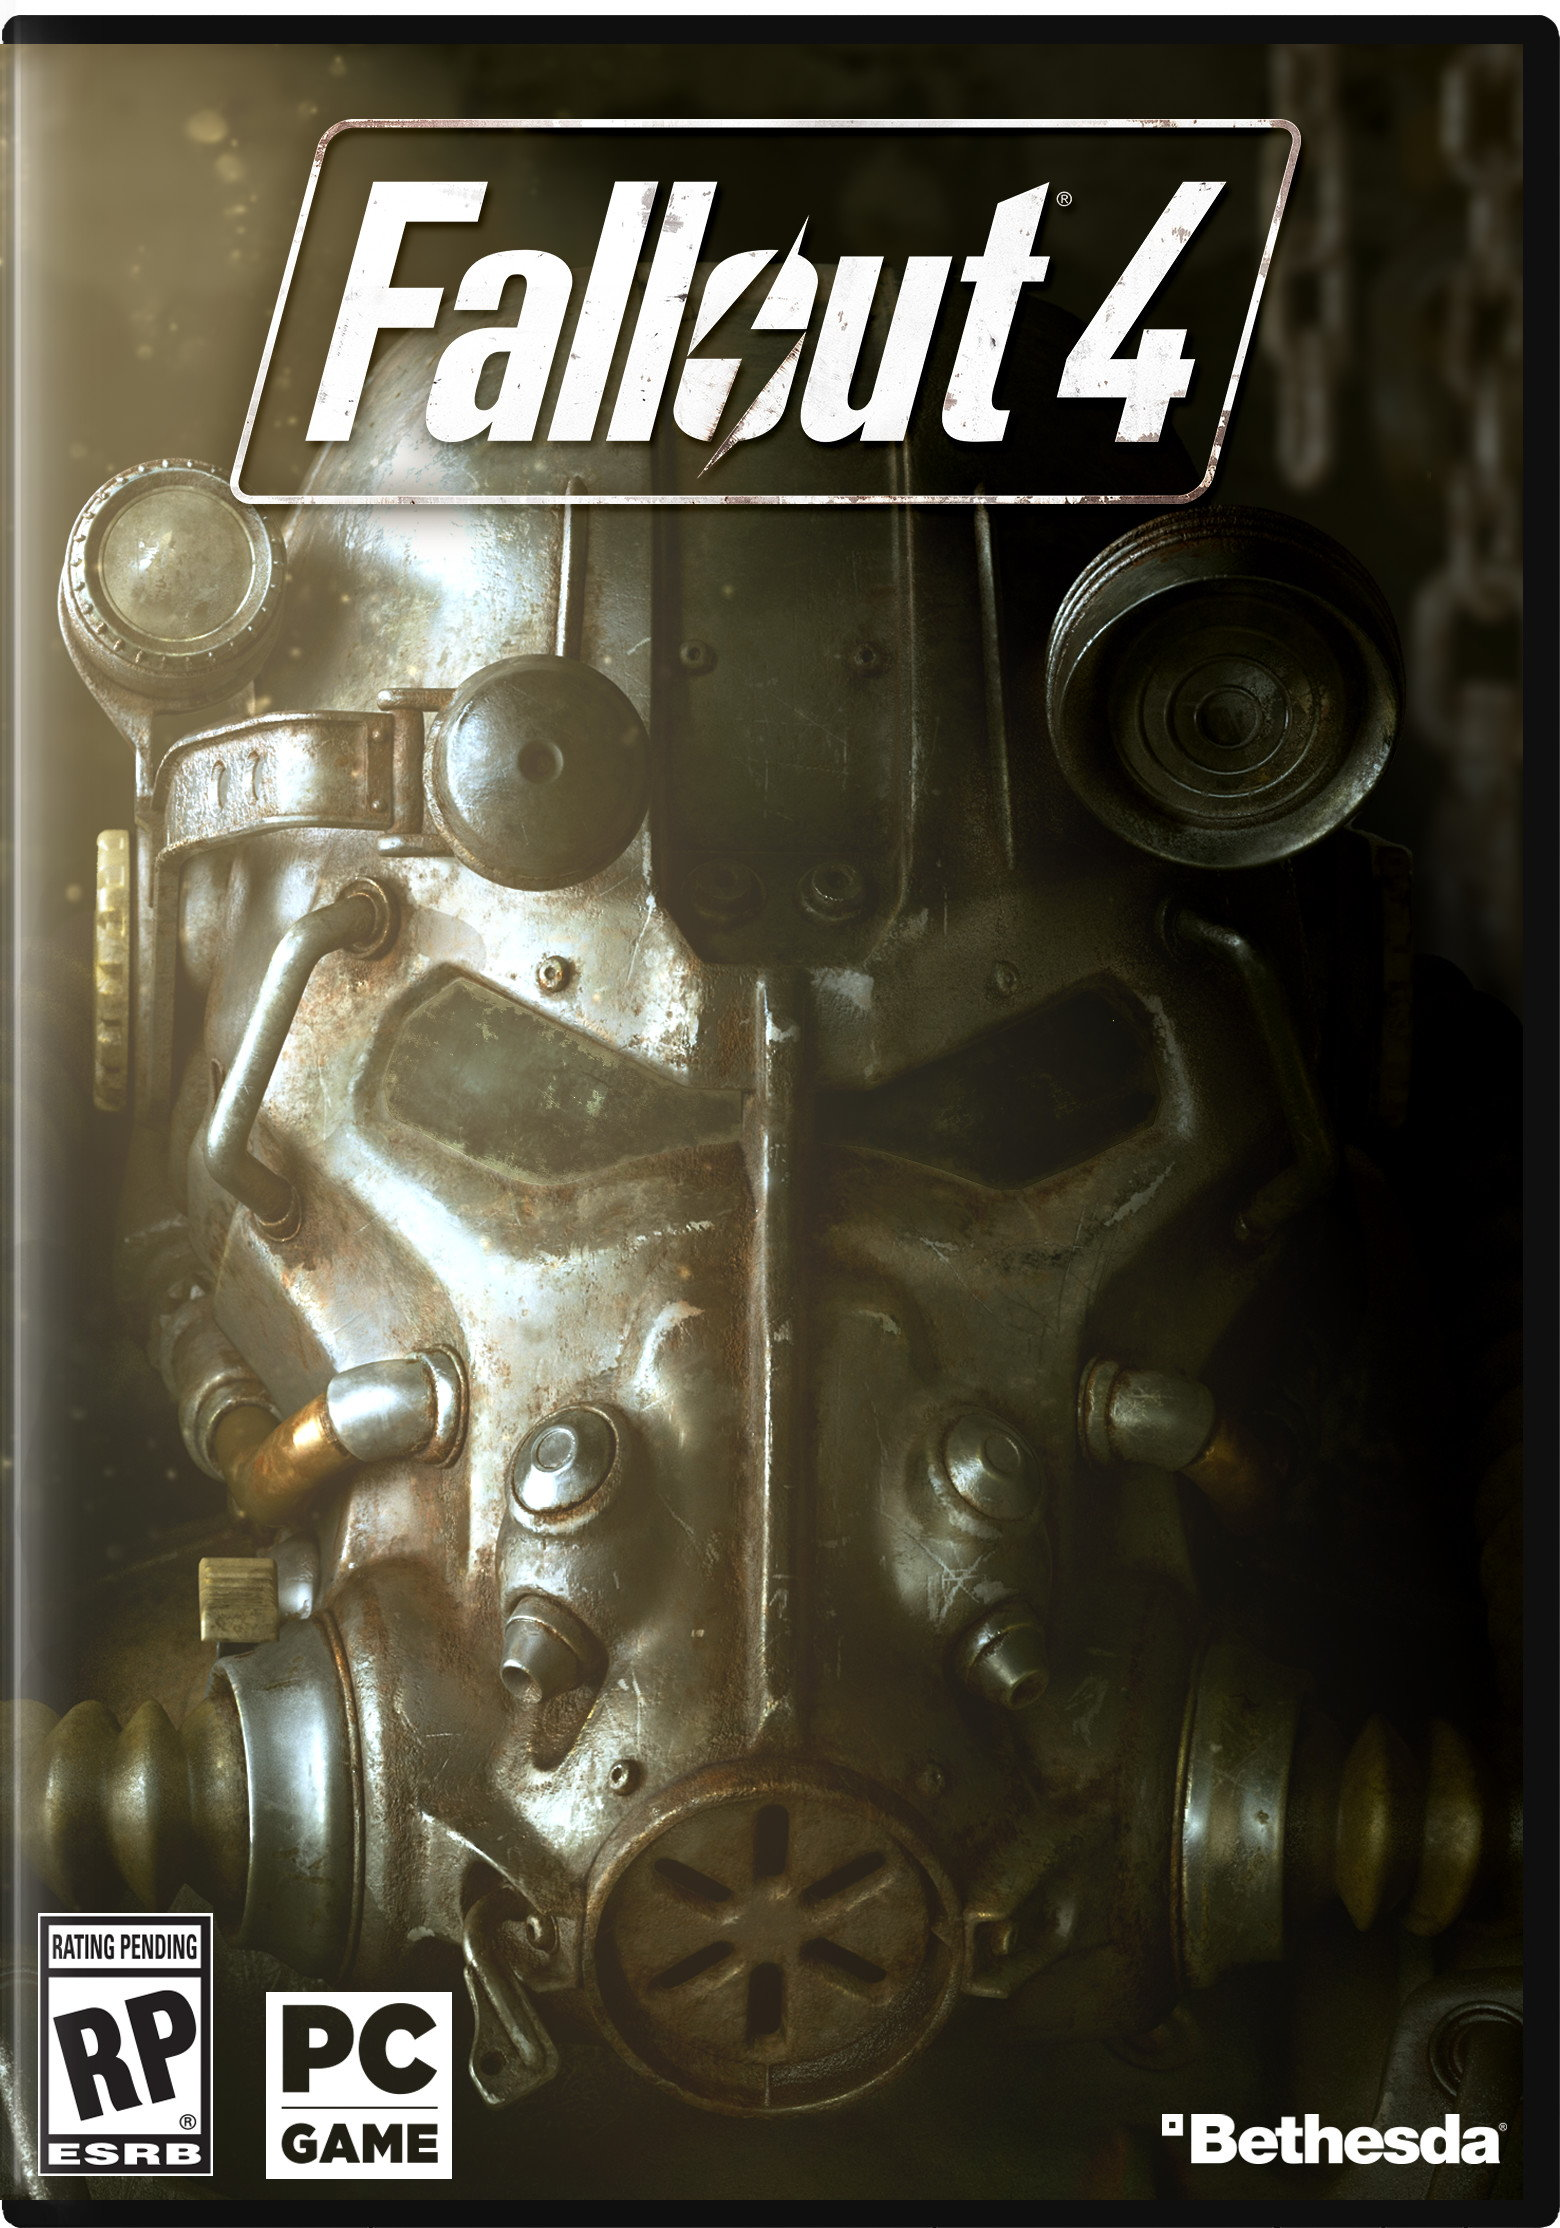 Opinie o   Fallout 4 PC